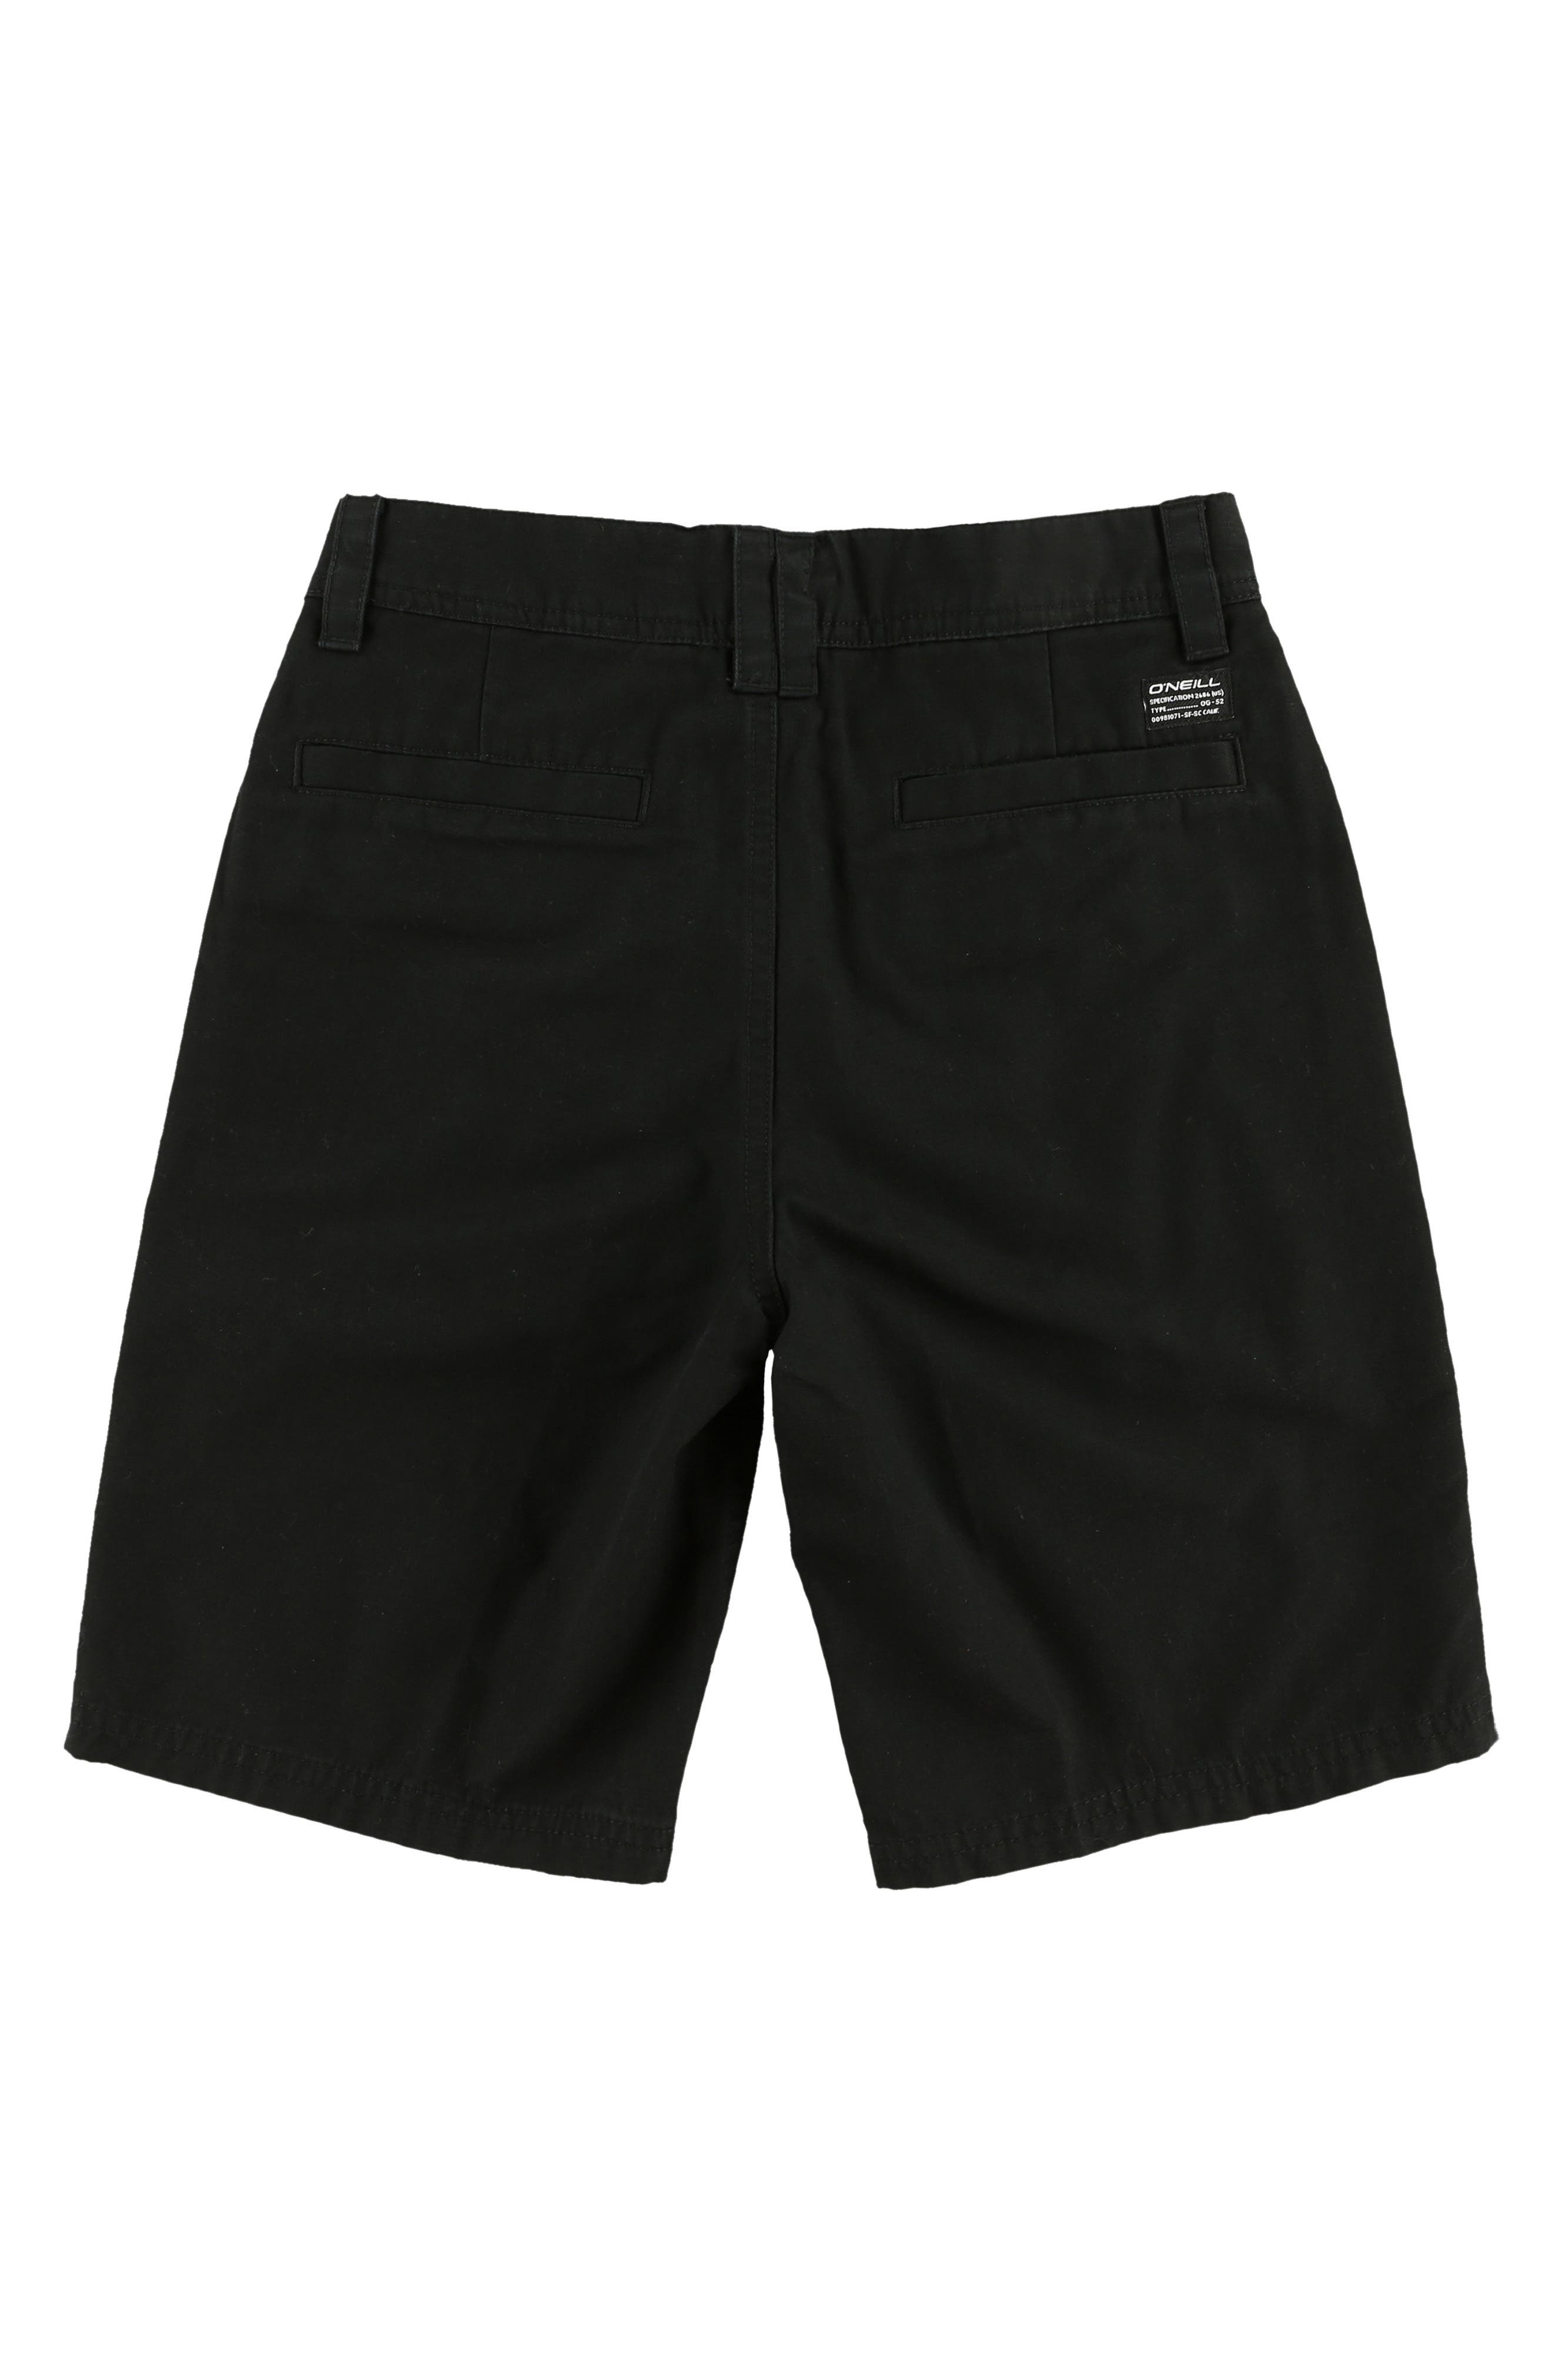 Jay Chino Shorts,                             Alternate thumbnail 2, color,                             001